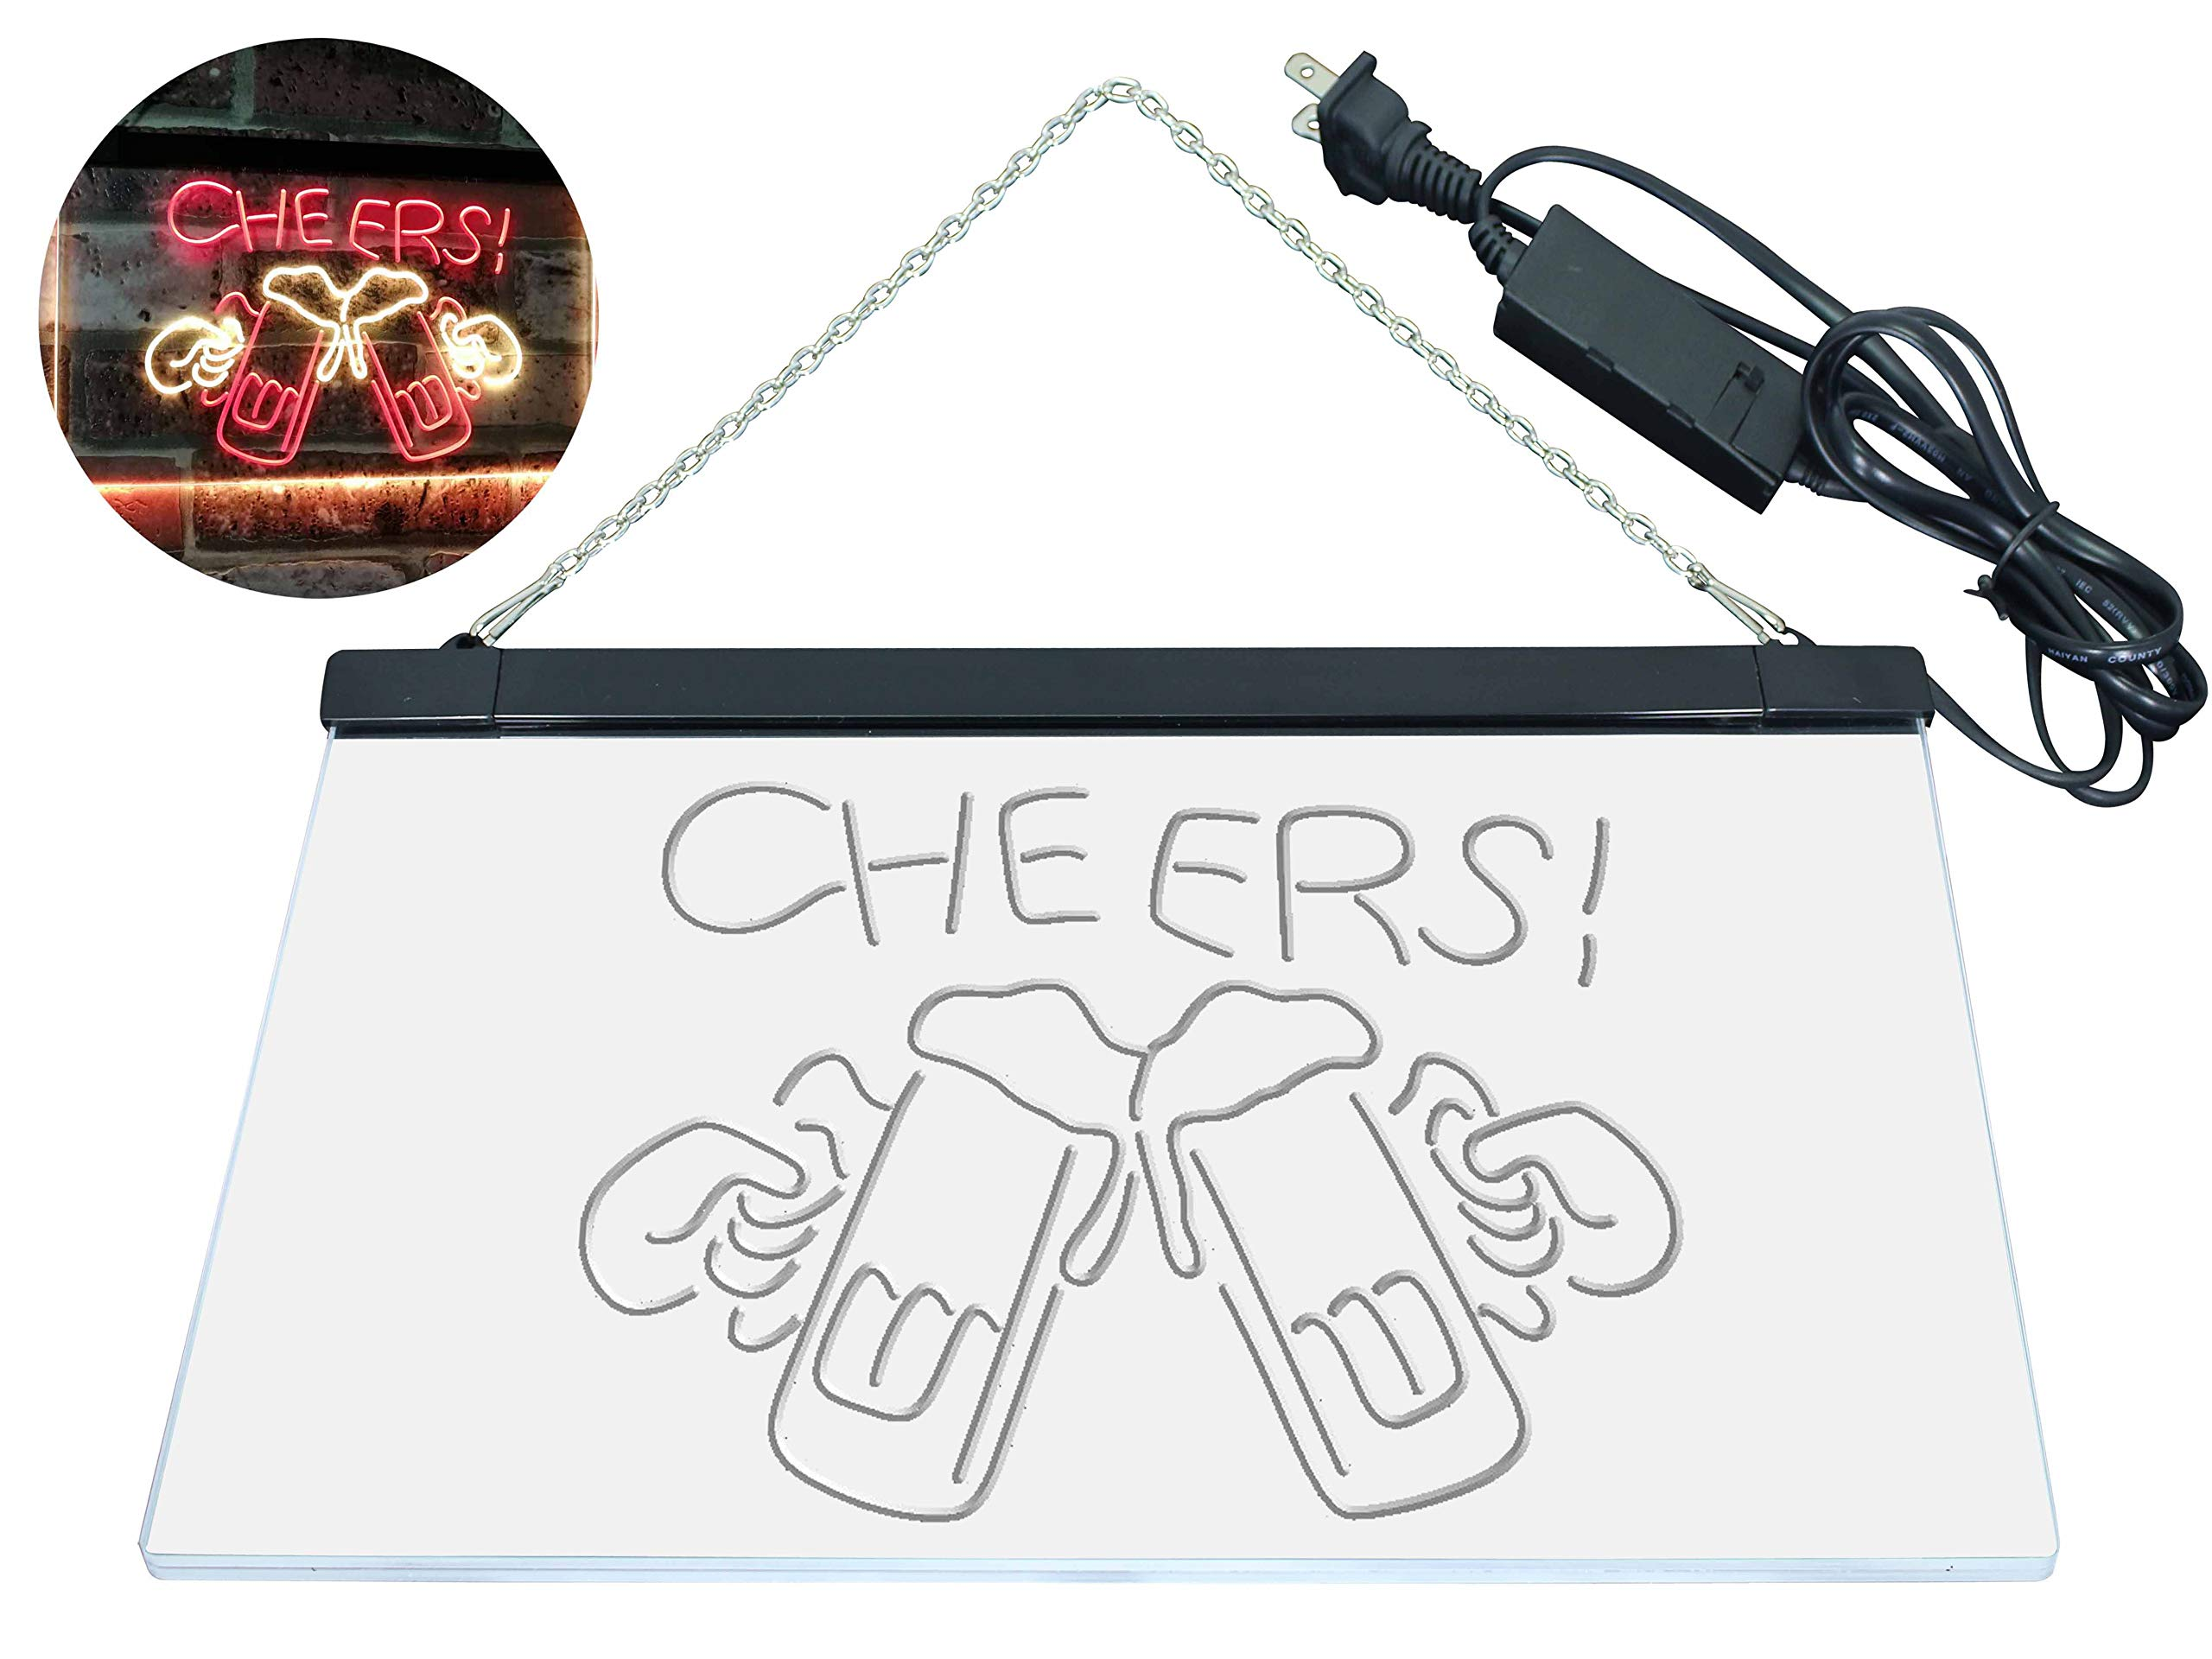 AdvpPro 2C Bar Cheers Beer Mugs Glass Home Décor Dual Color LED Neon Sign Red & Yellow 12'' x 8.5'' st6s32-i2857-ry